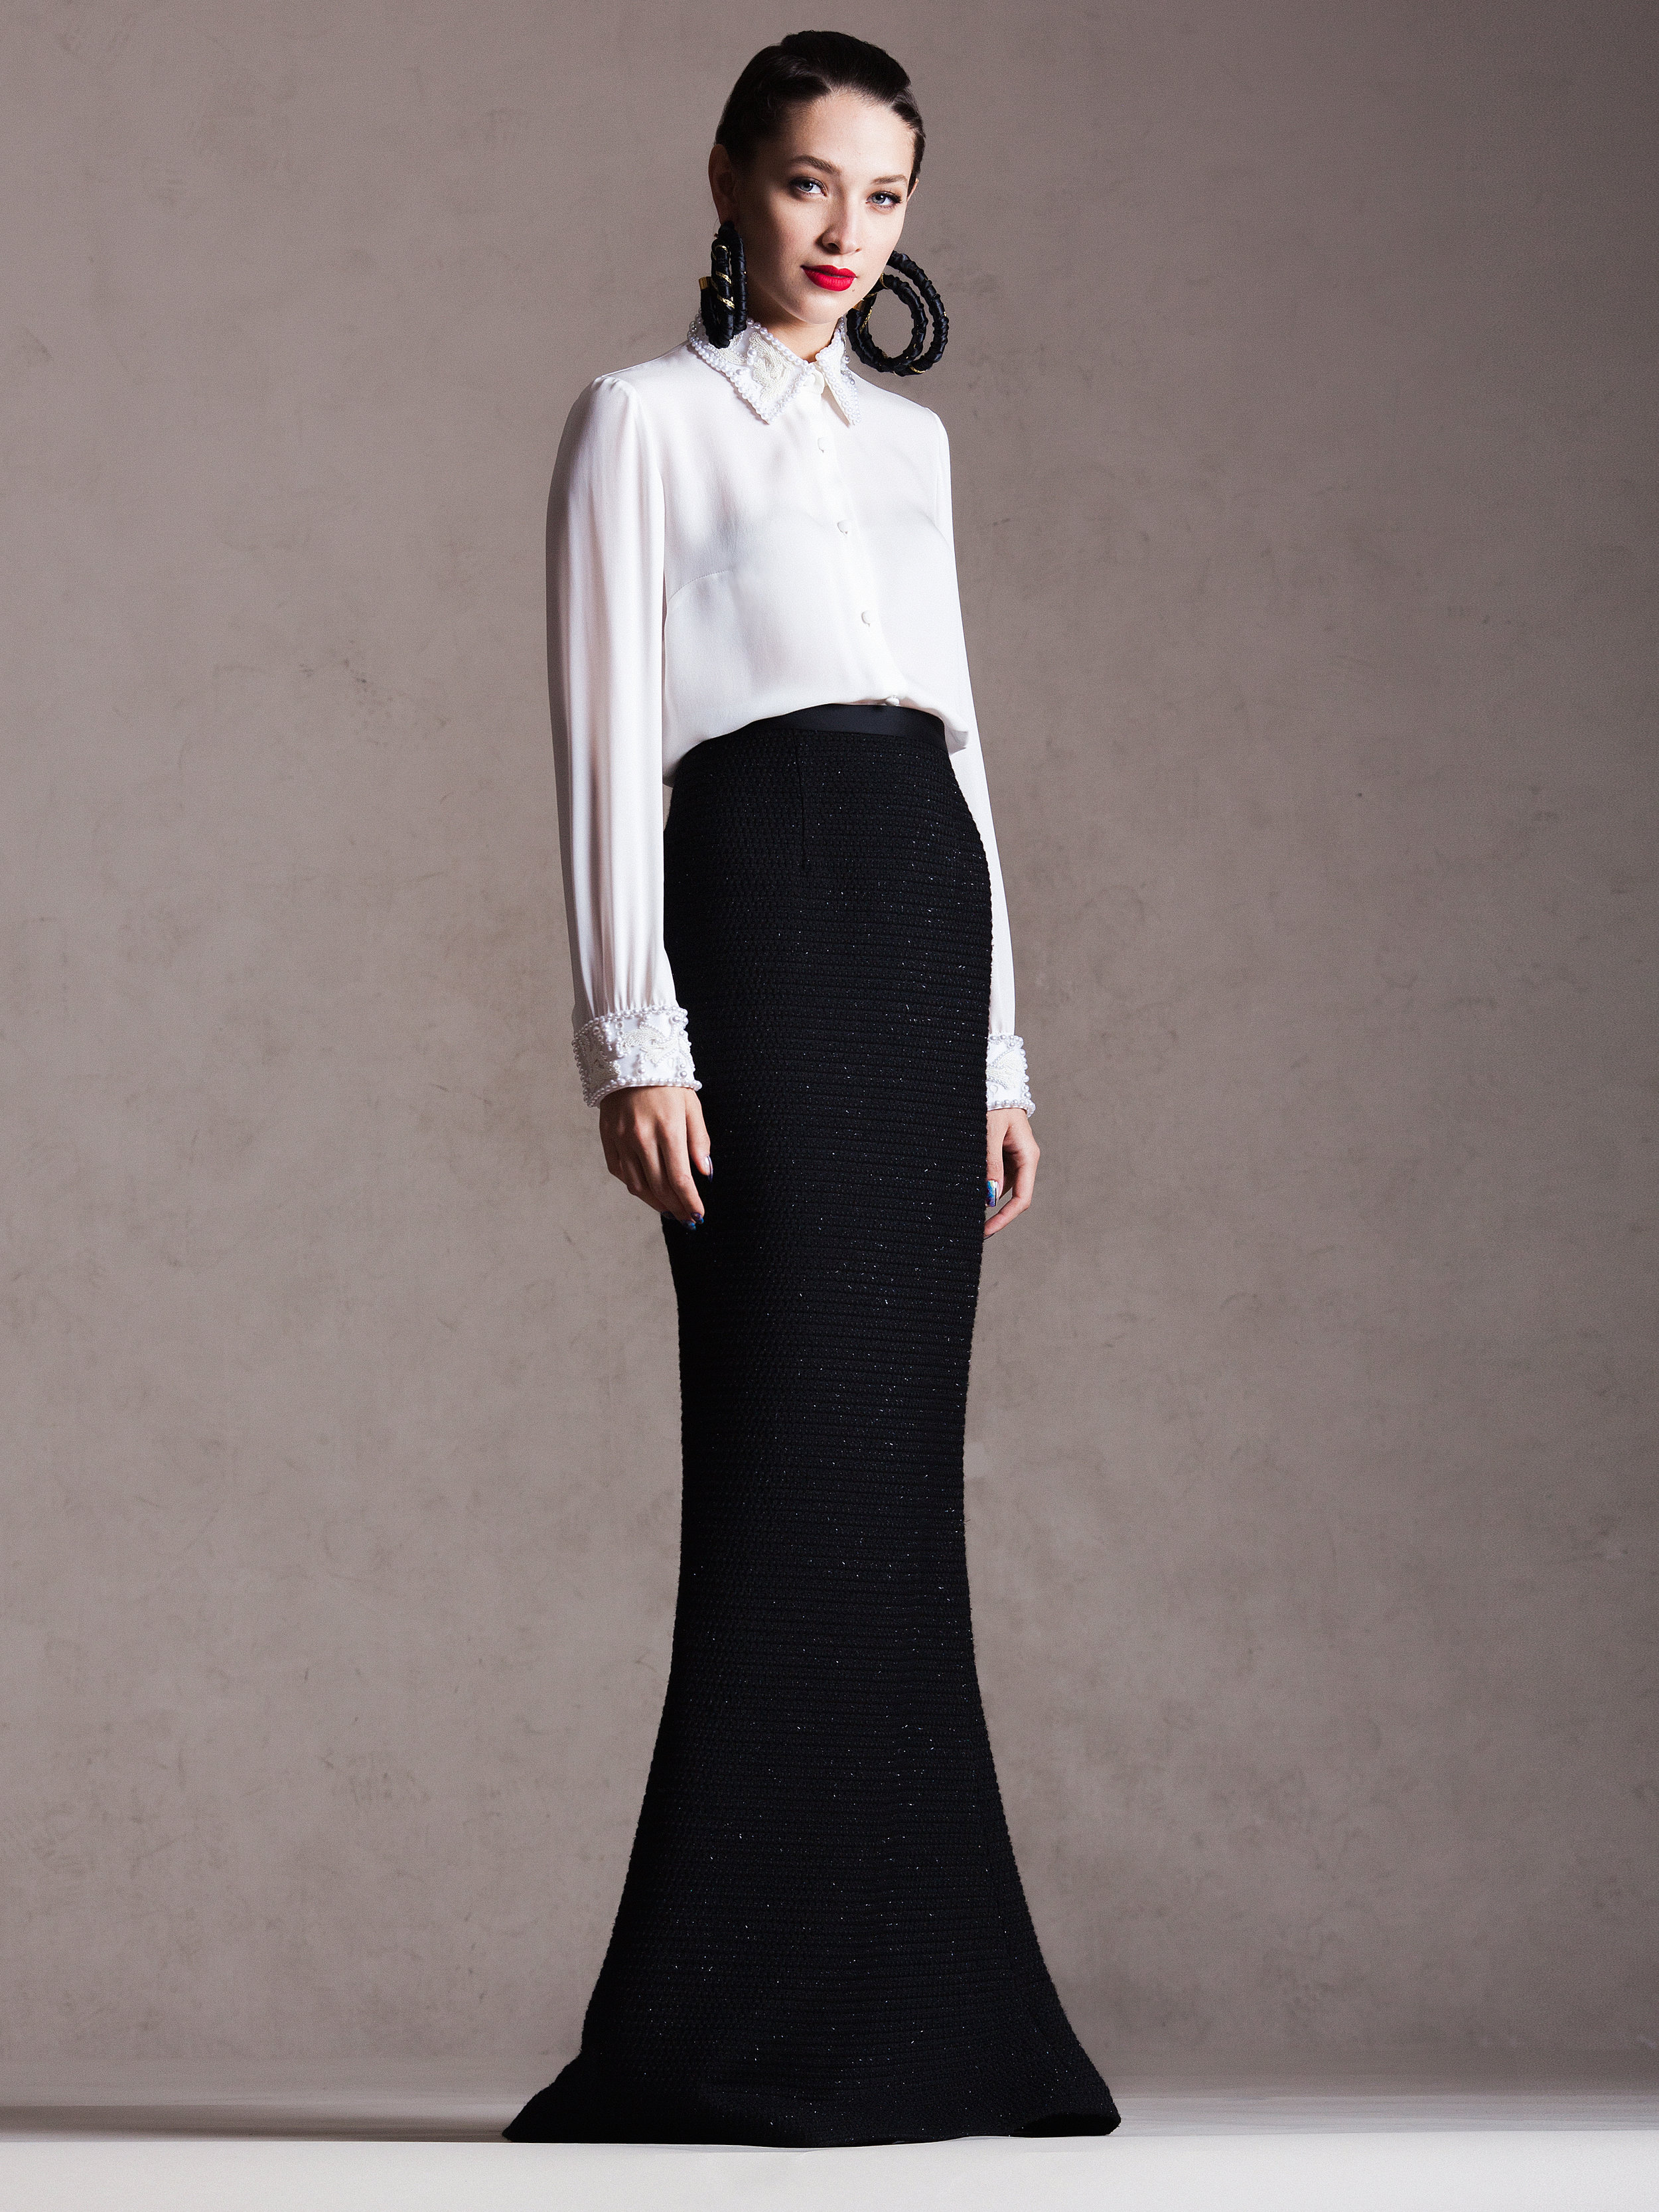 Lucian-Matis-Lookbook-20150204-018c.jpg